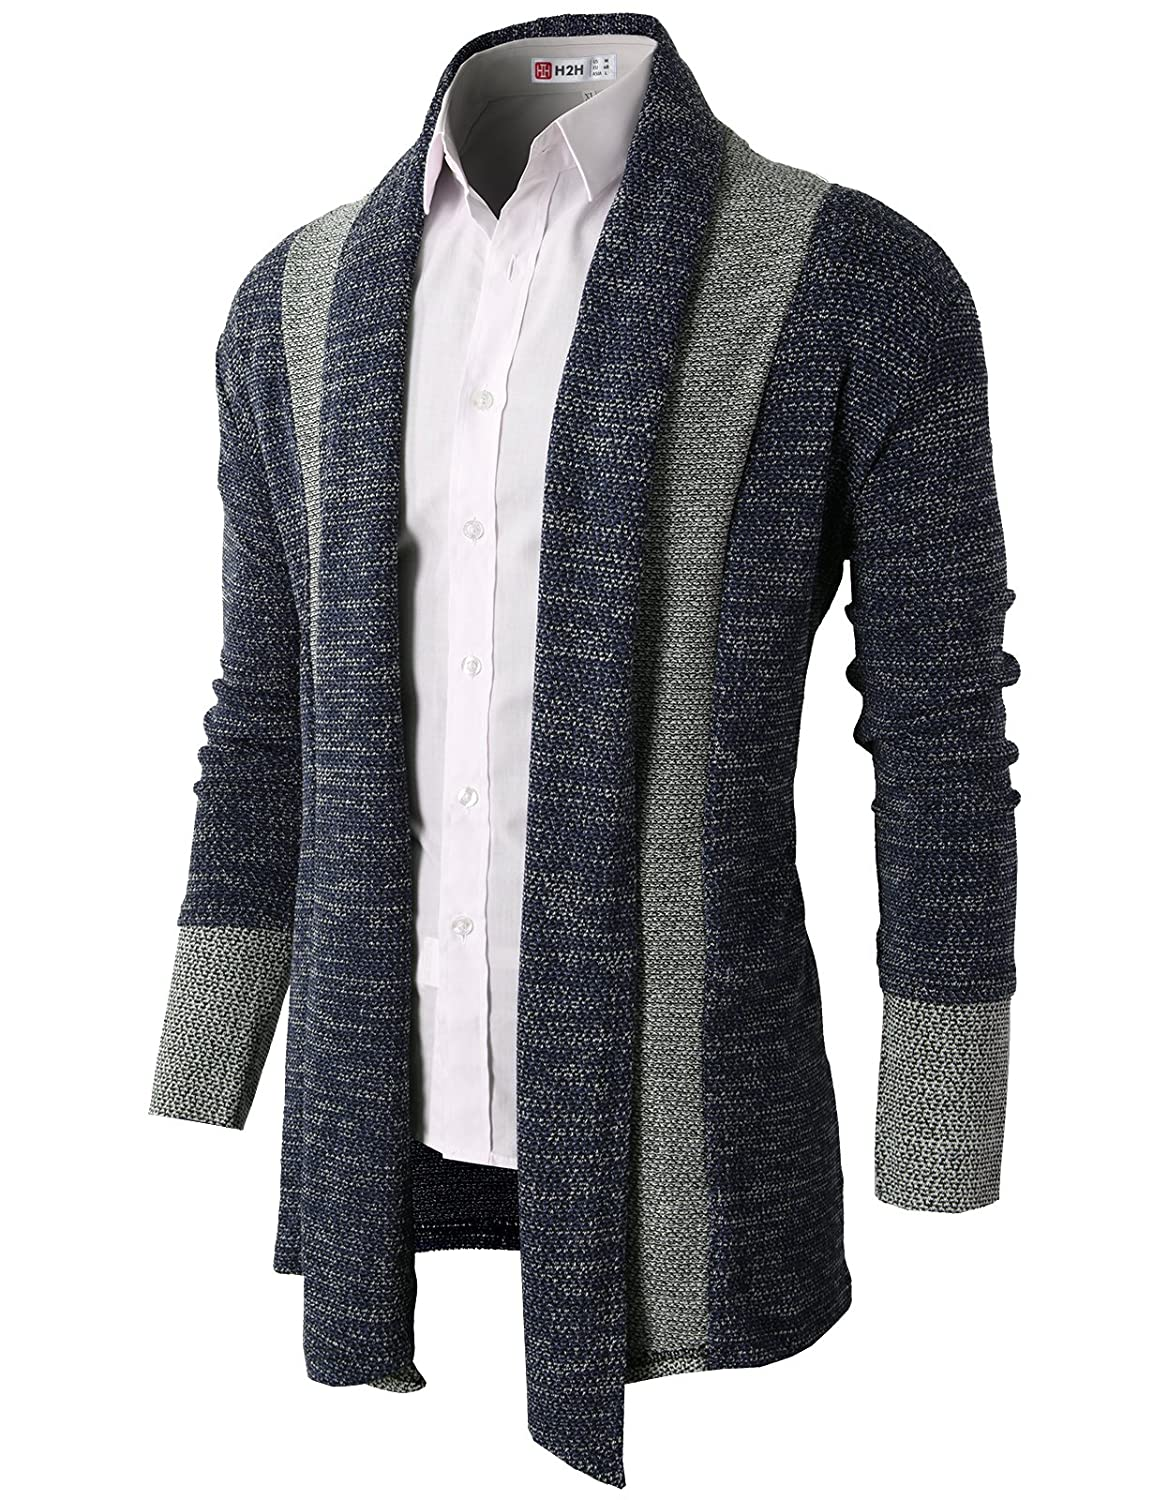 H2H Mens Casual Knit Cardigan with Double Shawl Collar GRAY Asia 3XL (KMOCAL012) NAVY EU S/Asia M (CMOCAL013)